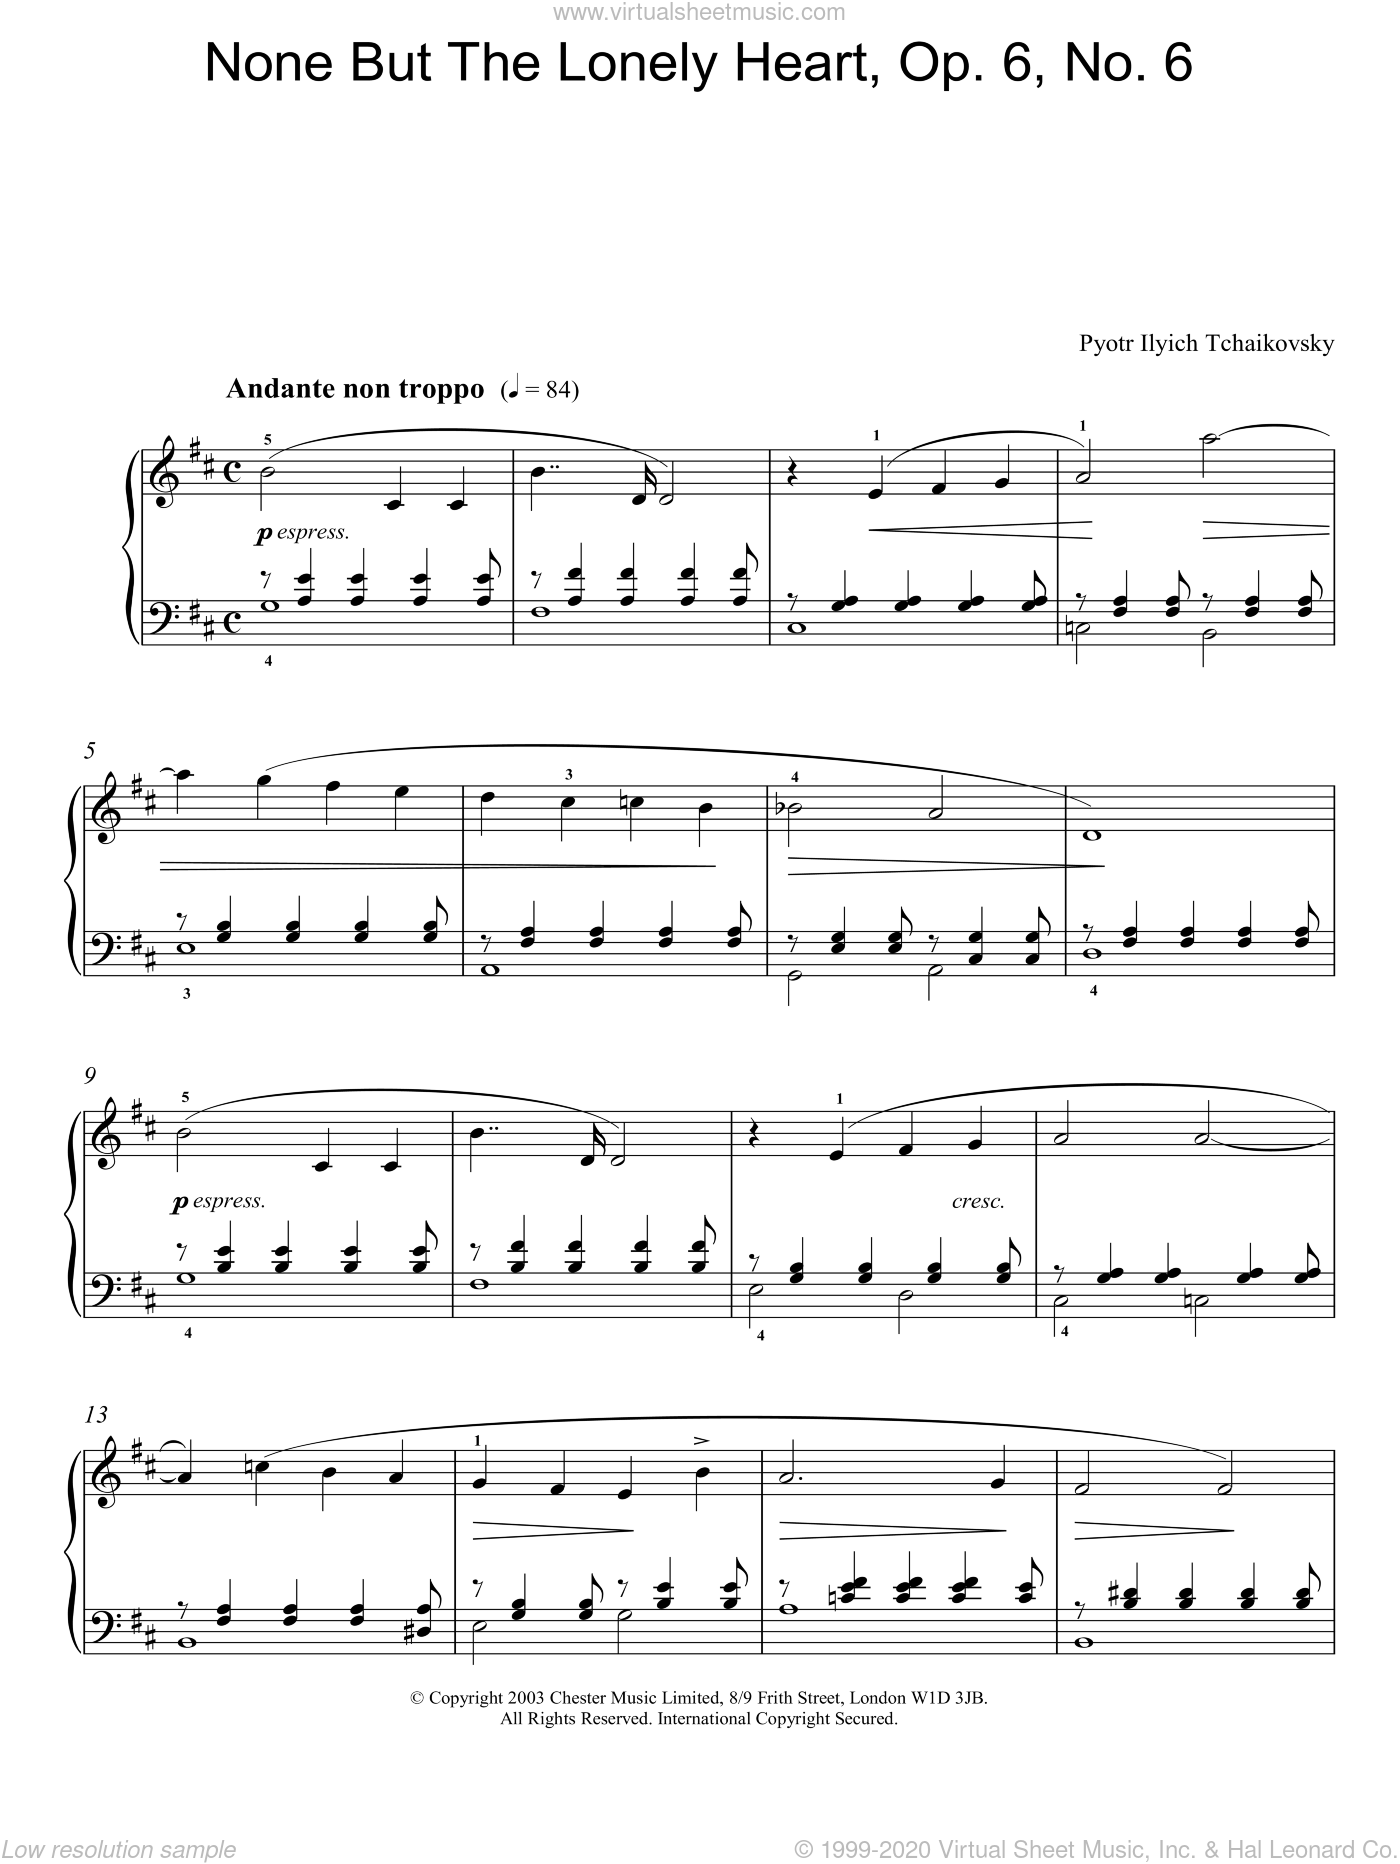 None But The Lonely Heart, Op. 6, No. 6 sheet music for piano solo by Pyotr Ilyich Tchaikovsky, classical score, intermediate skill level